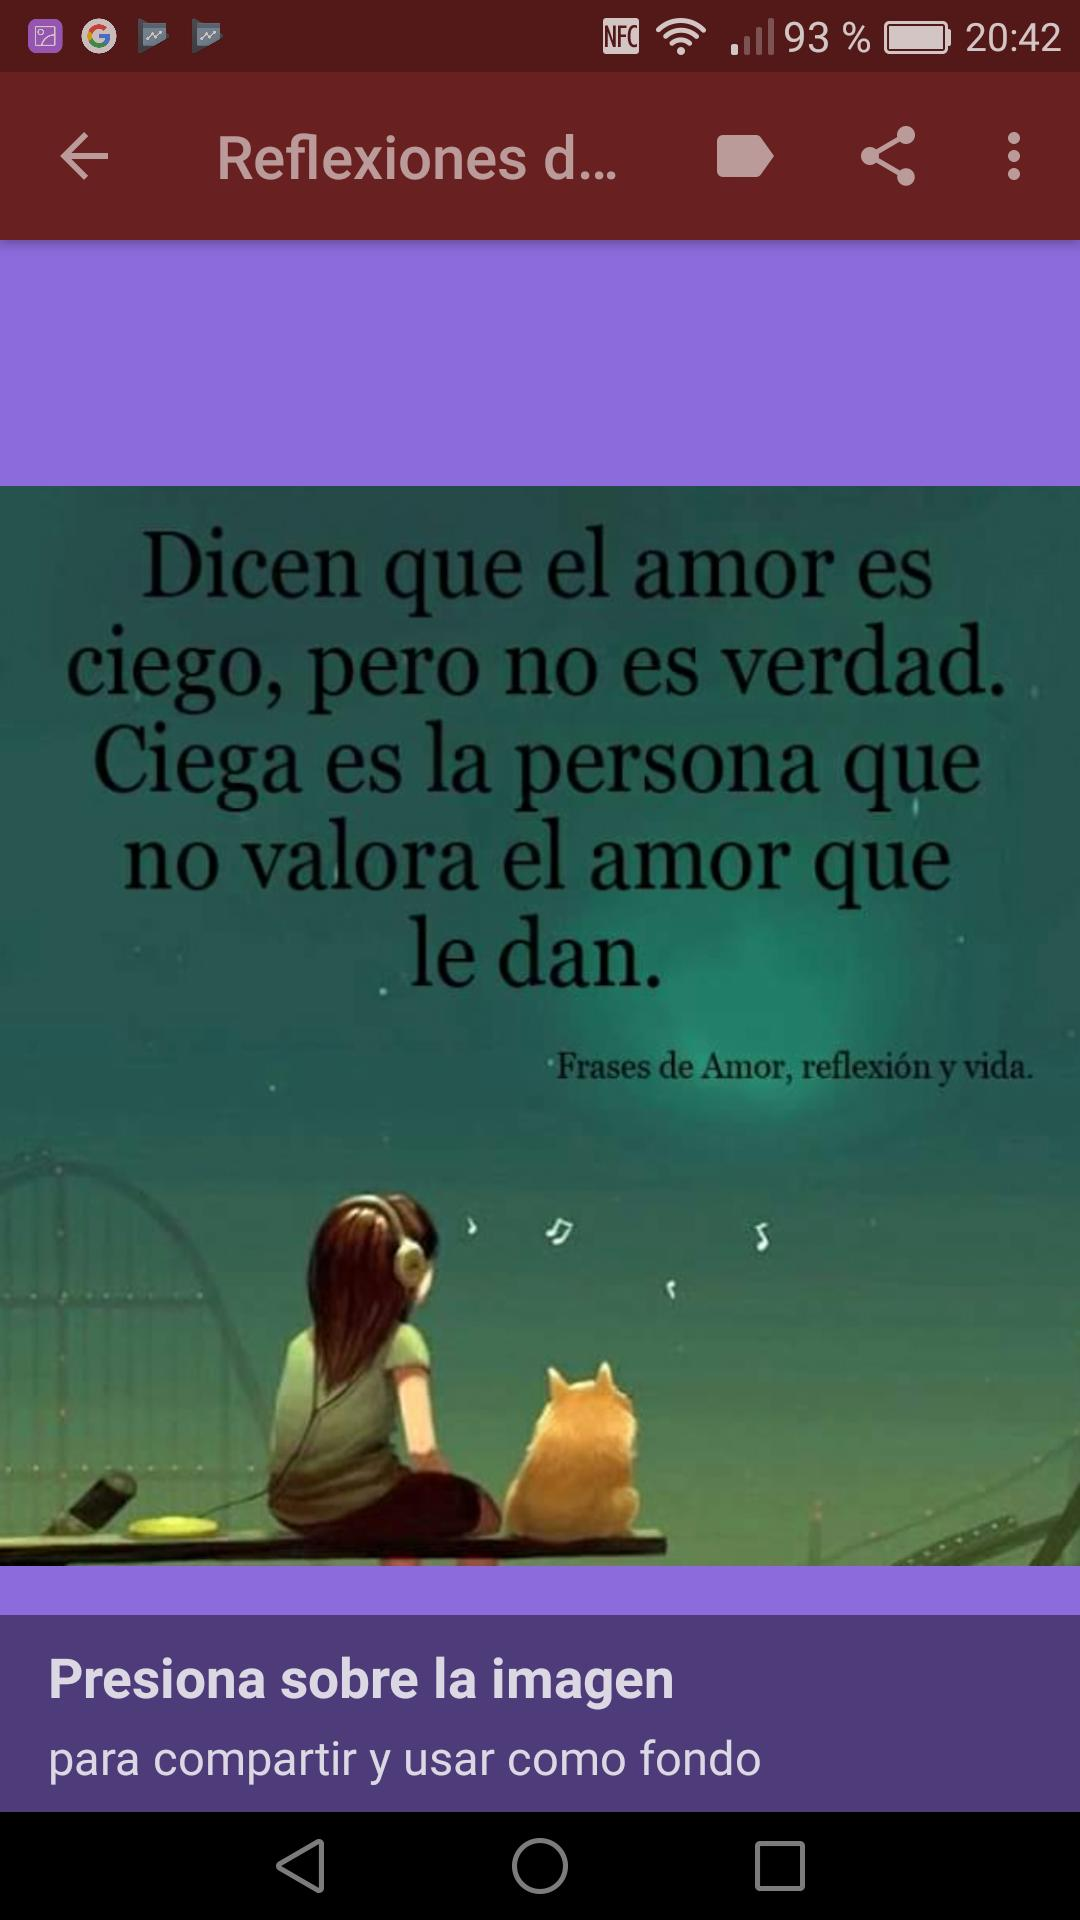 Reflexiones Sabias De Amor Y Vida For Android Apk Download